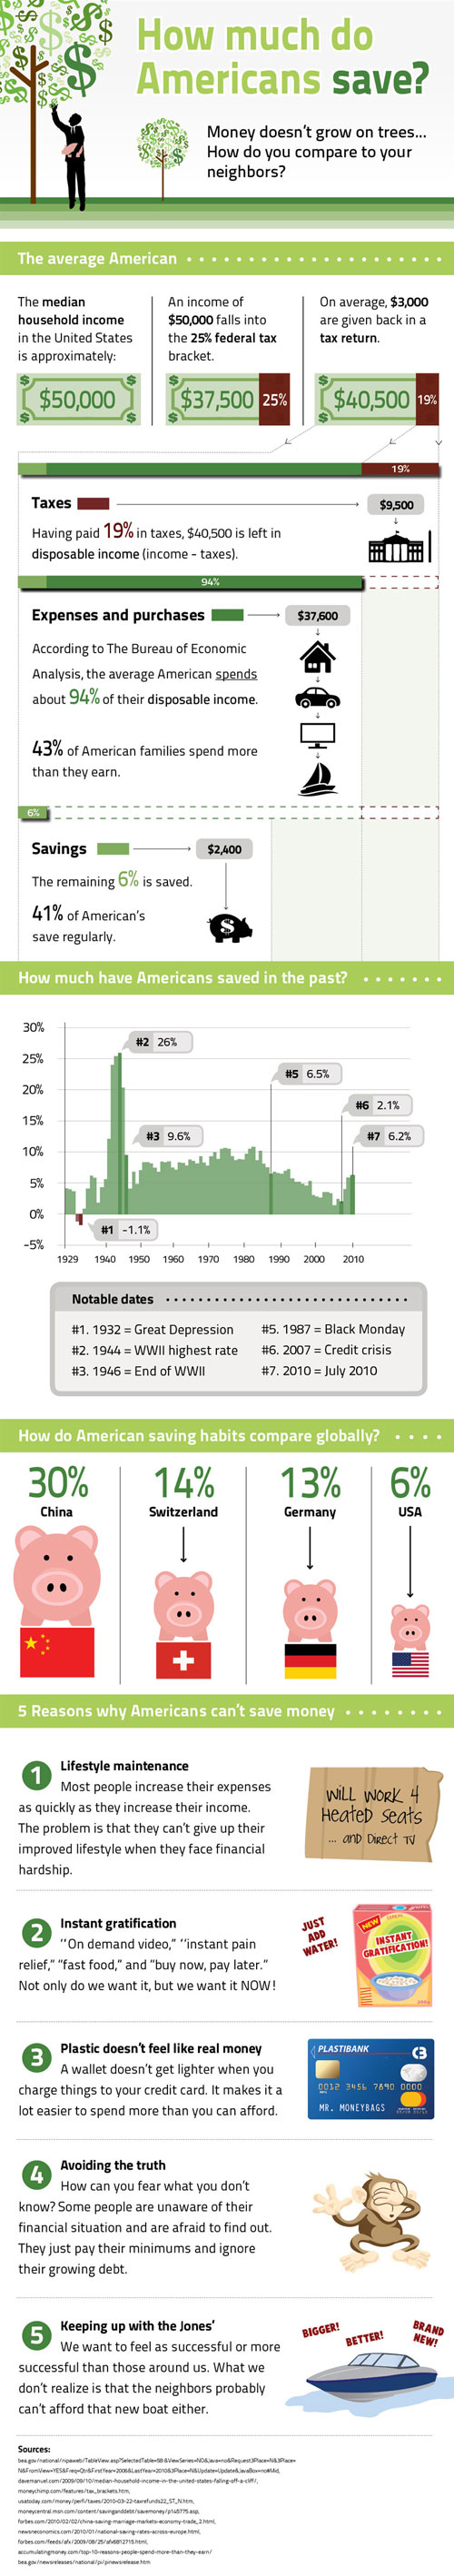 How Americans saved in the past